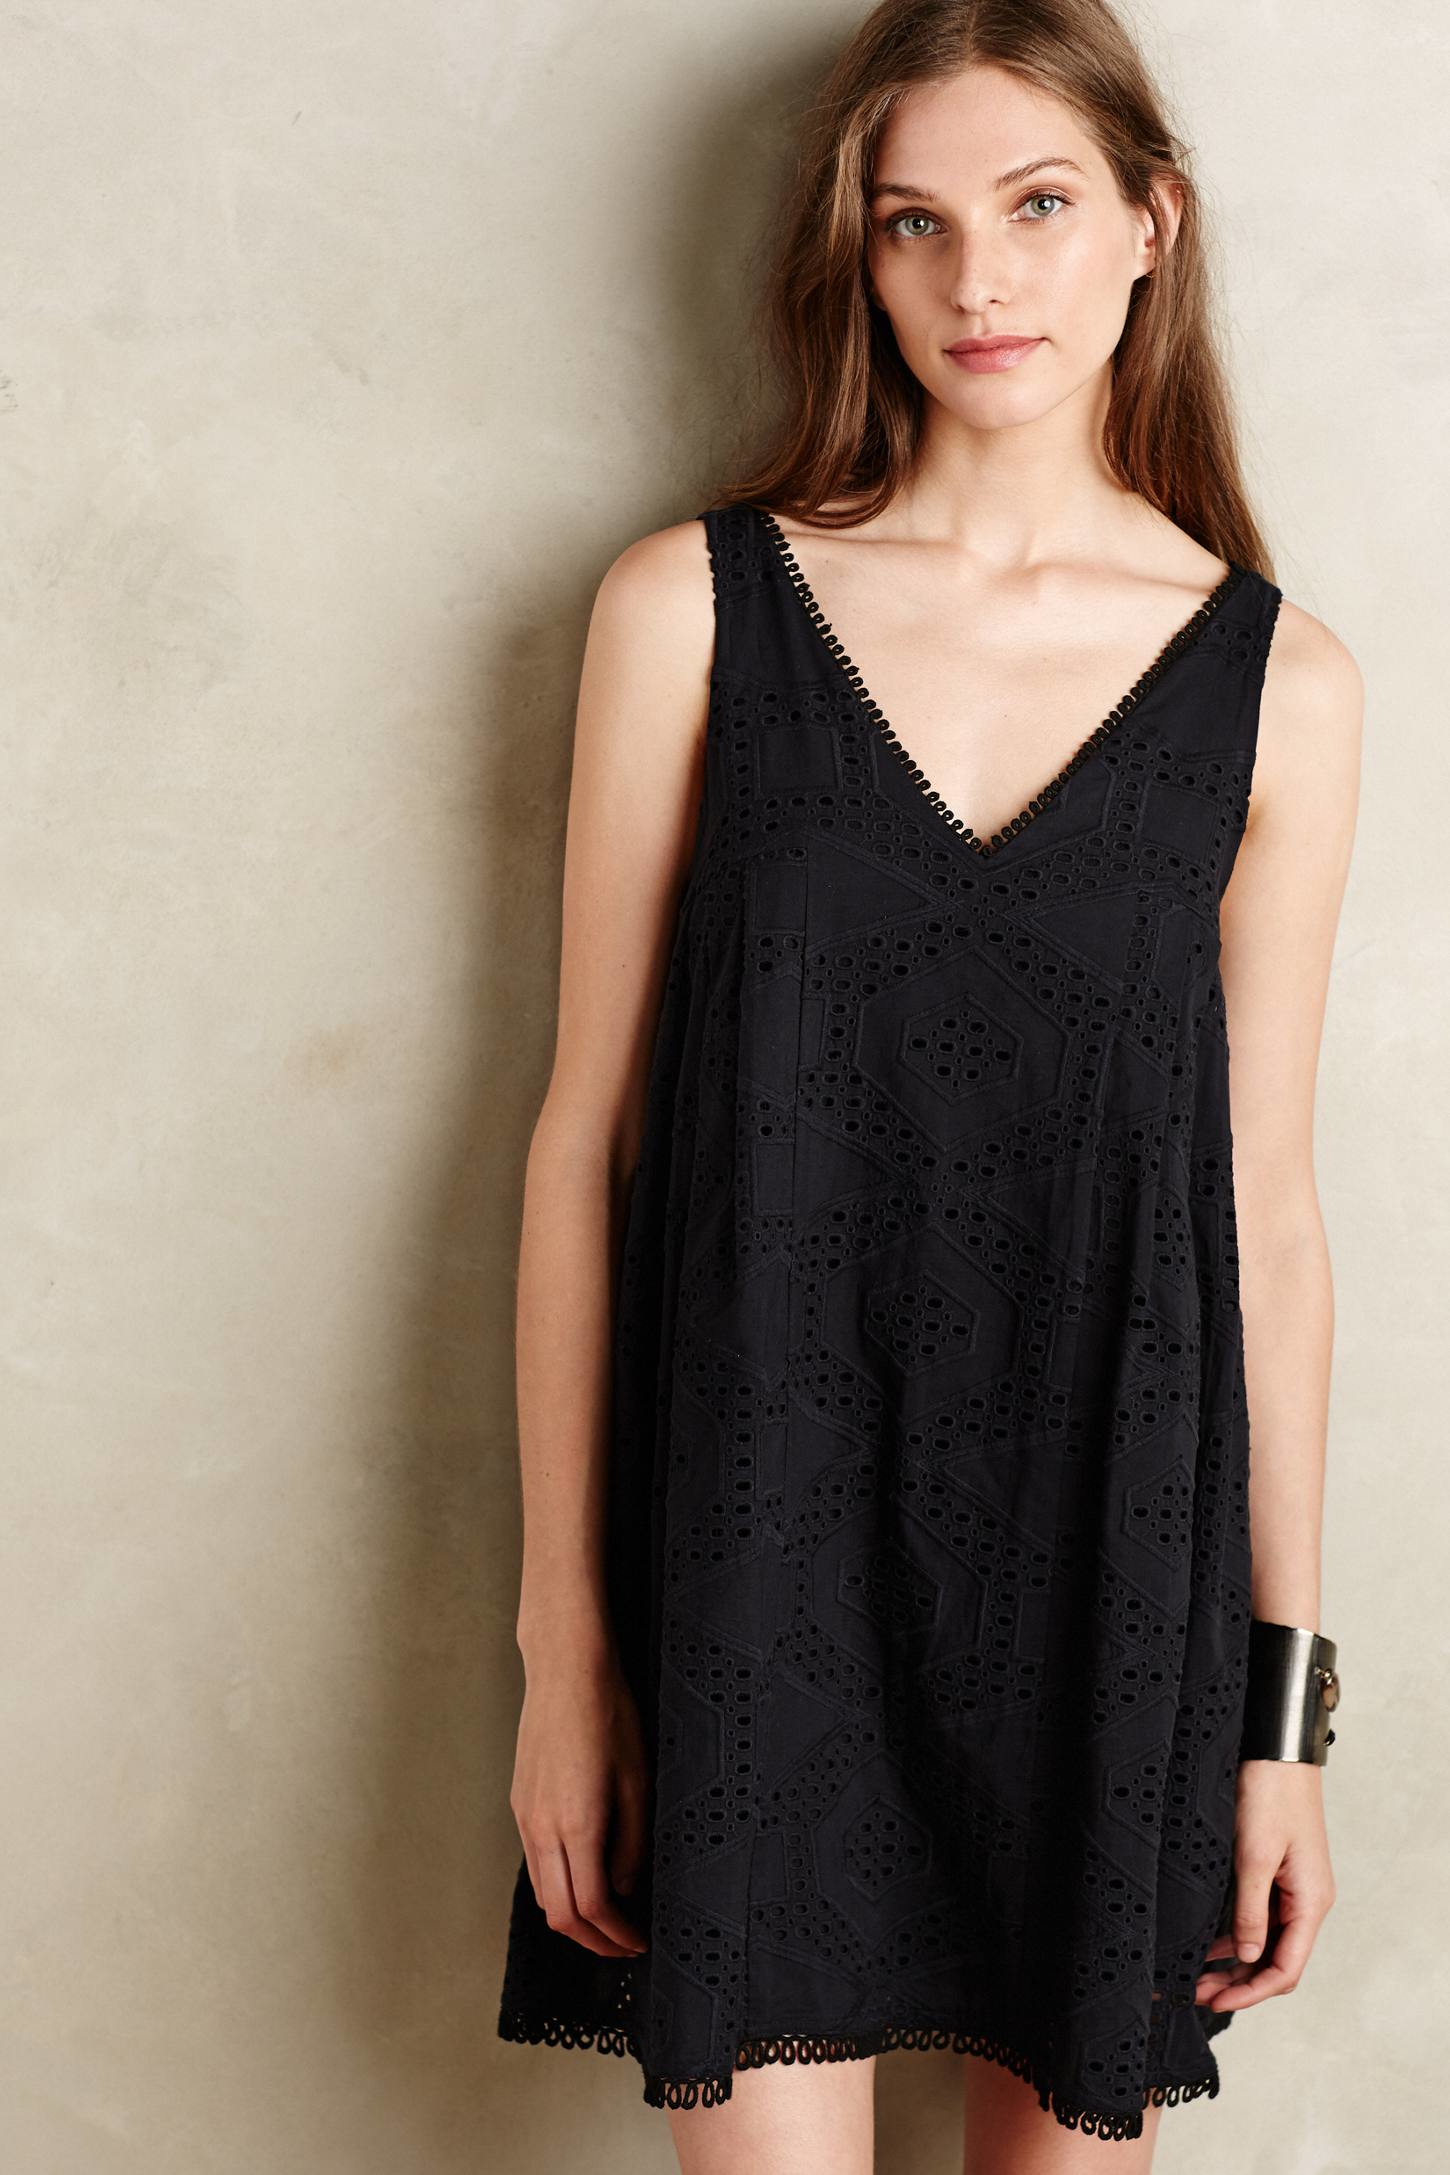 7d62f49a31bbc Maeve Luci Eyelet Swing Dress in Black - Lyst